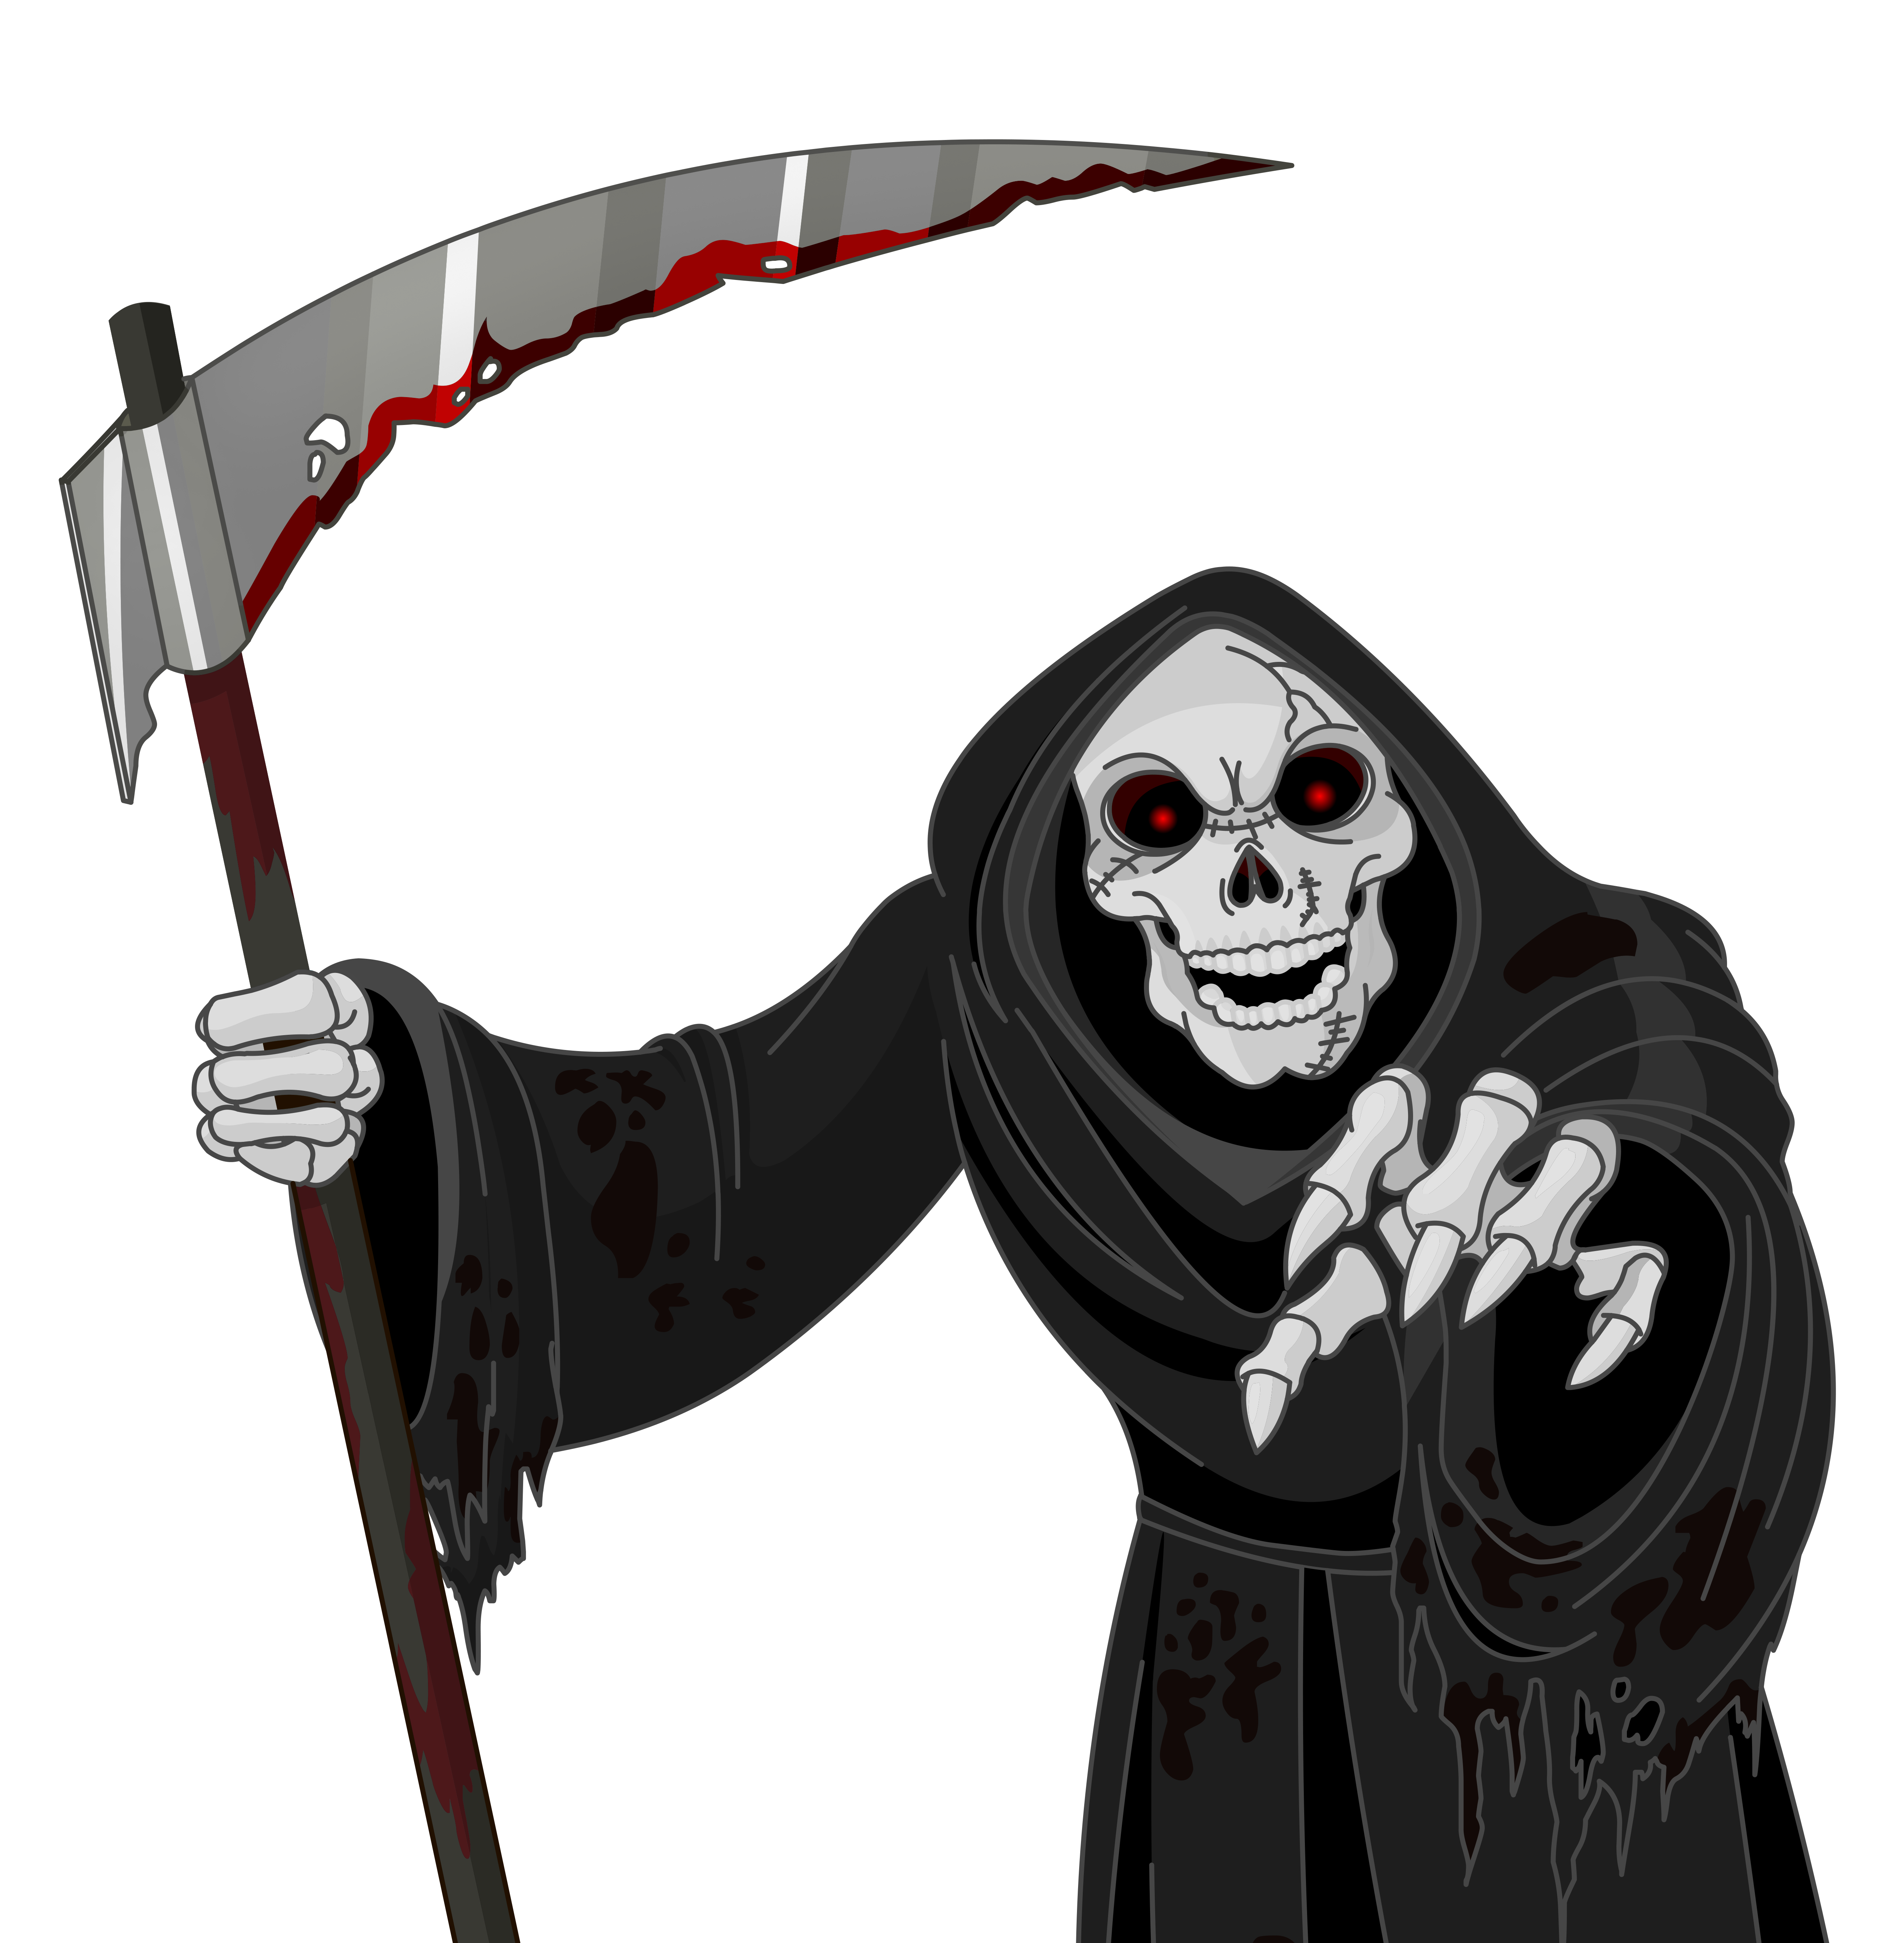 Scary grim reaper png. Clipart halloween spooky